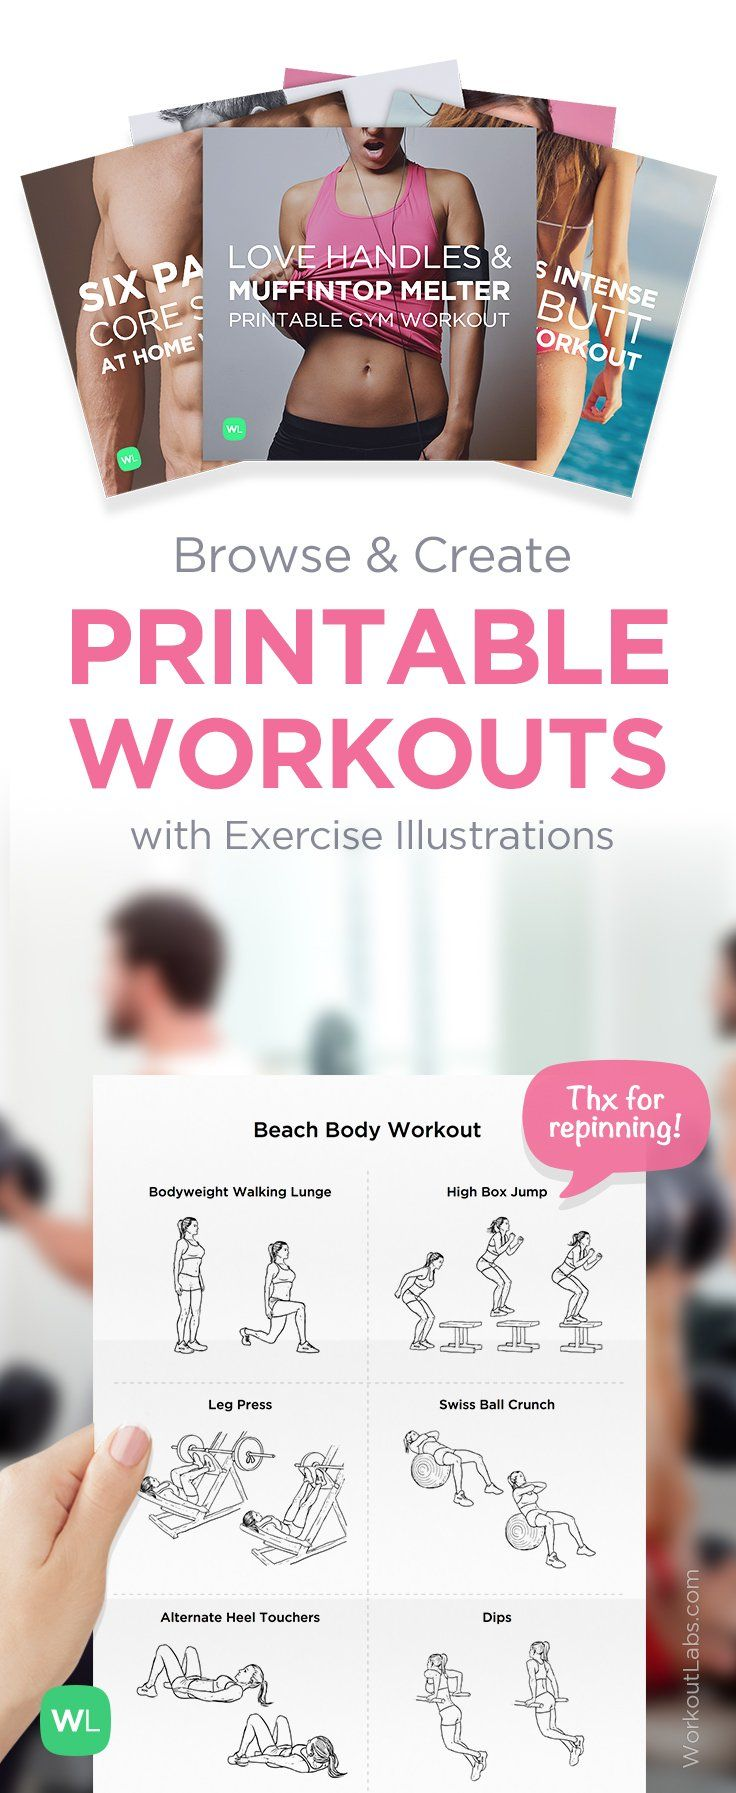 It's just an image of Hilaire Printable Gym Workouts